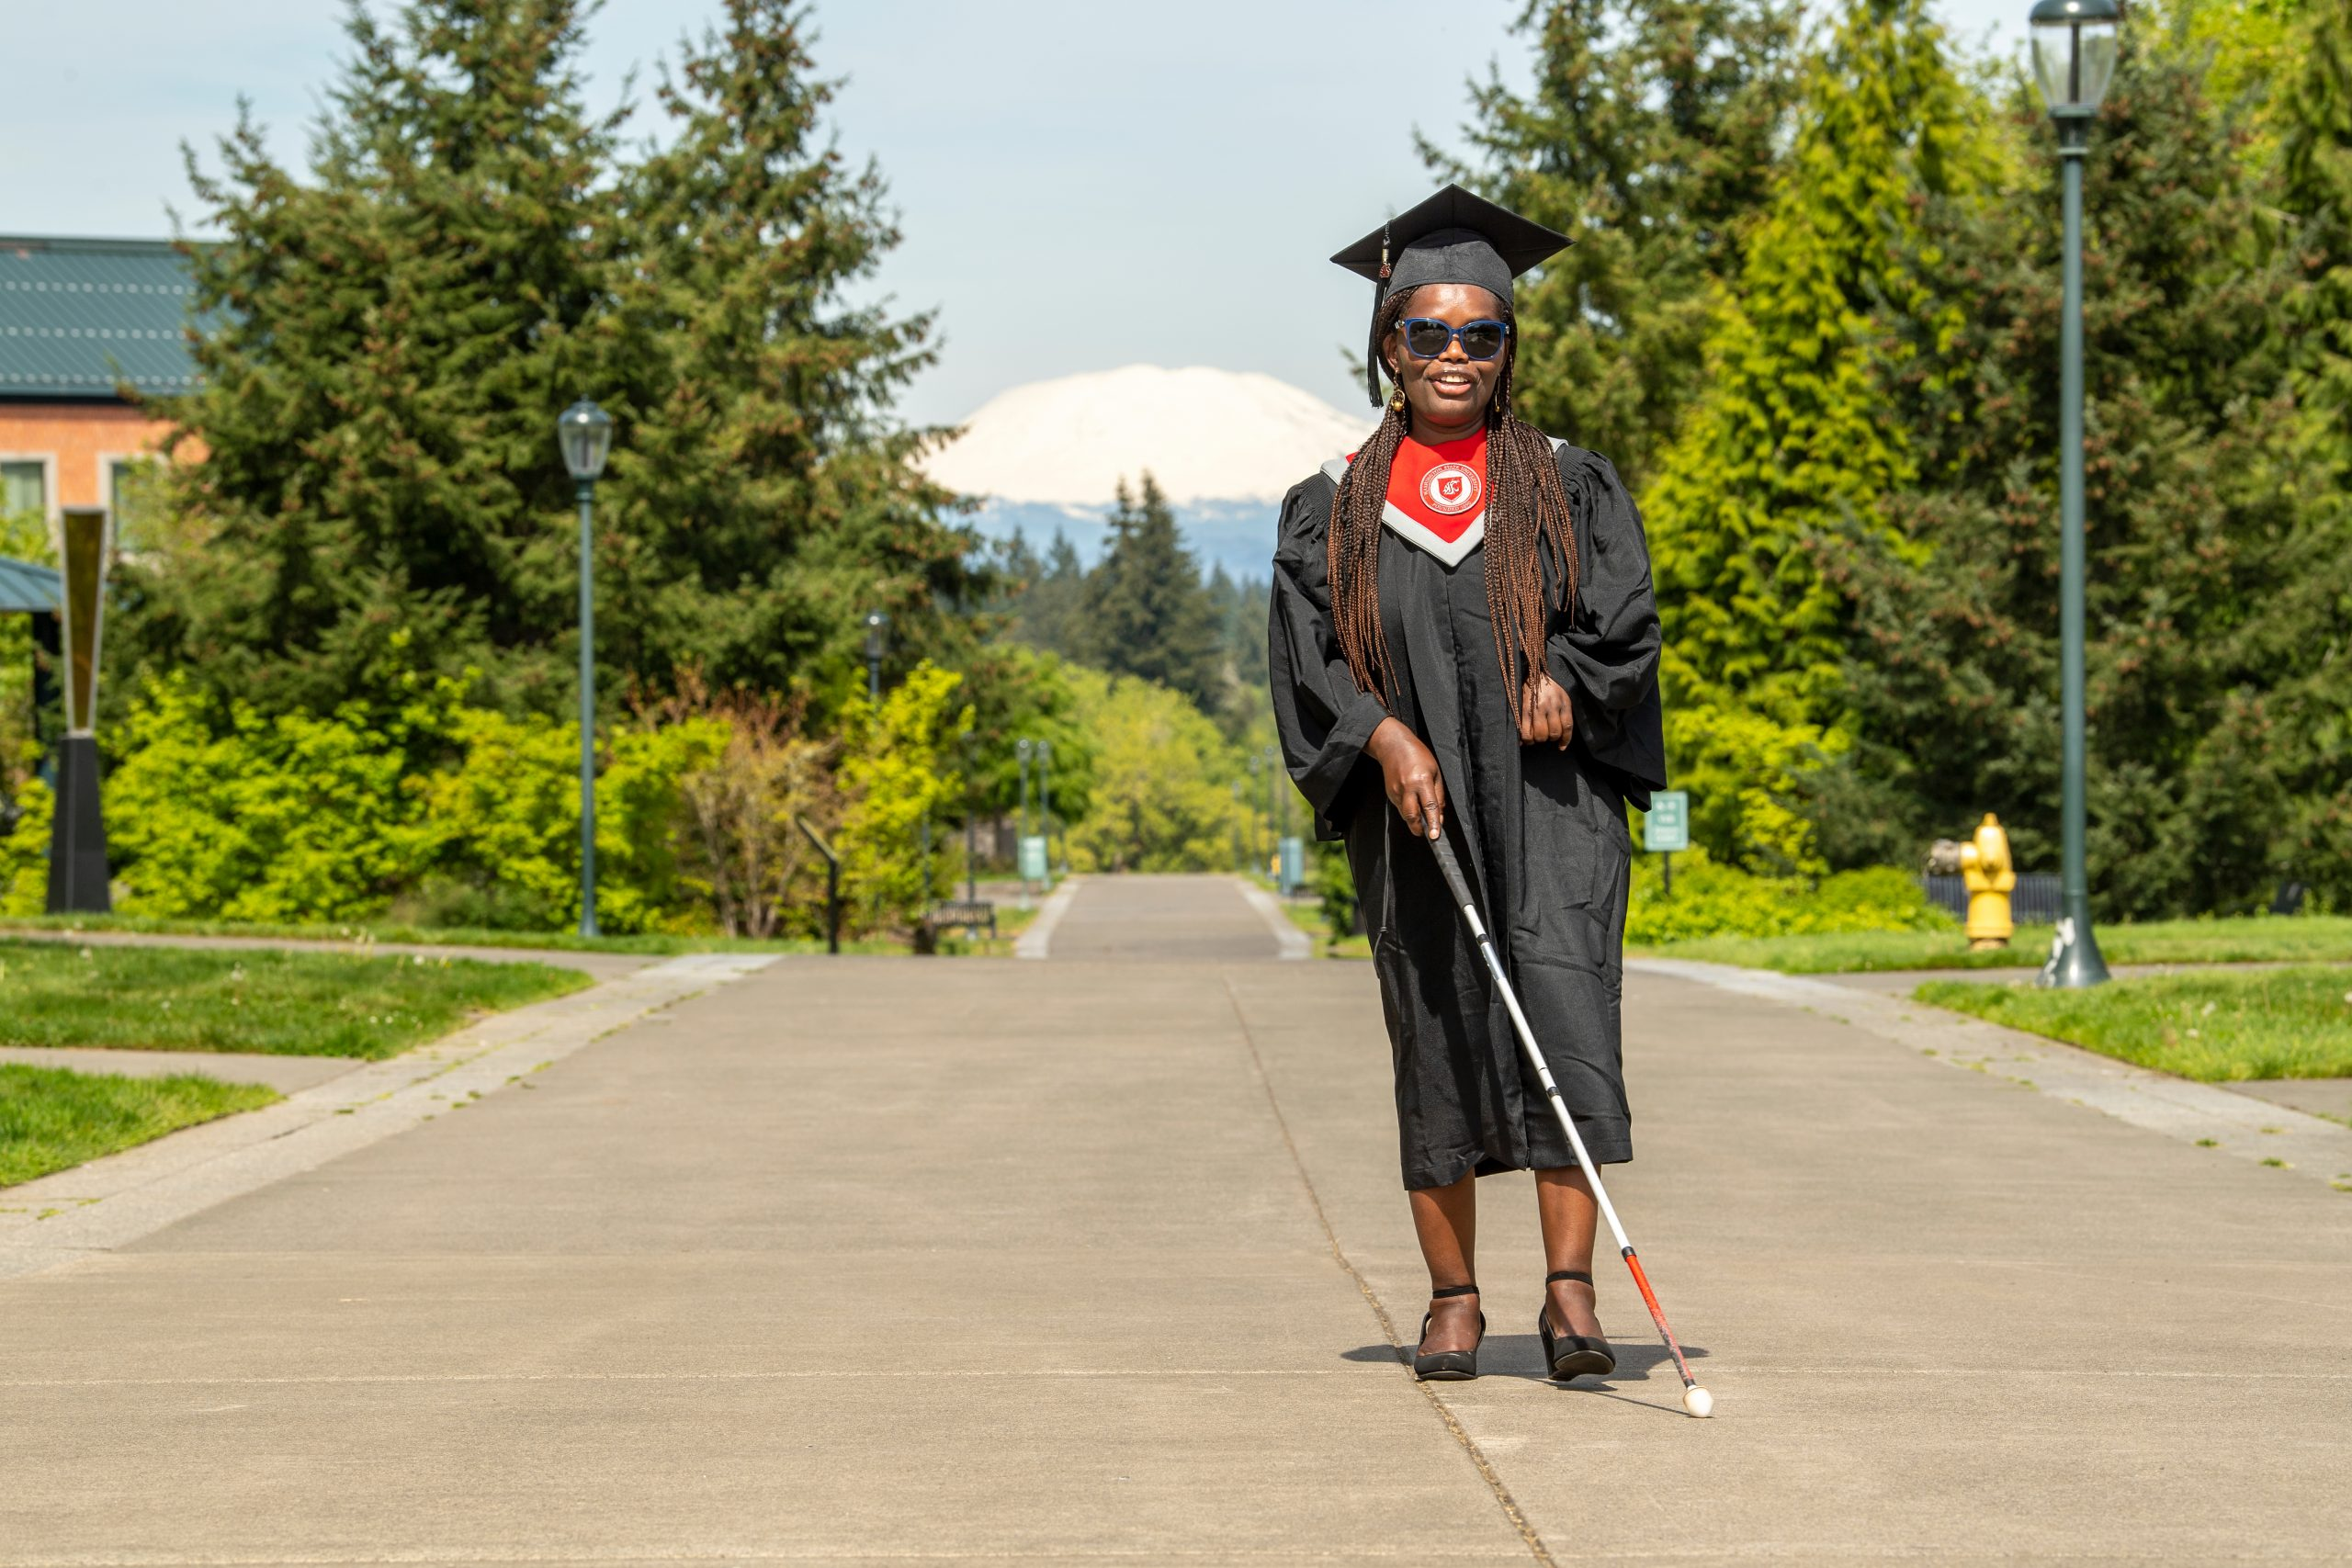 Griffith wears a WSU gap and gown walking down a sidewalk on the WSU Vancouver campus using a cane to assist.